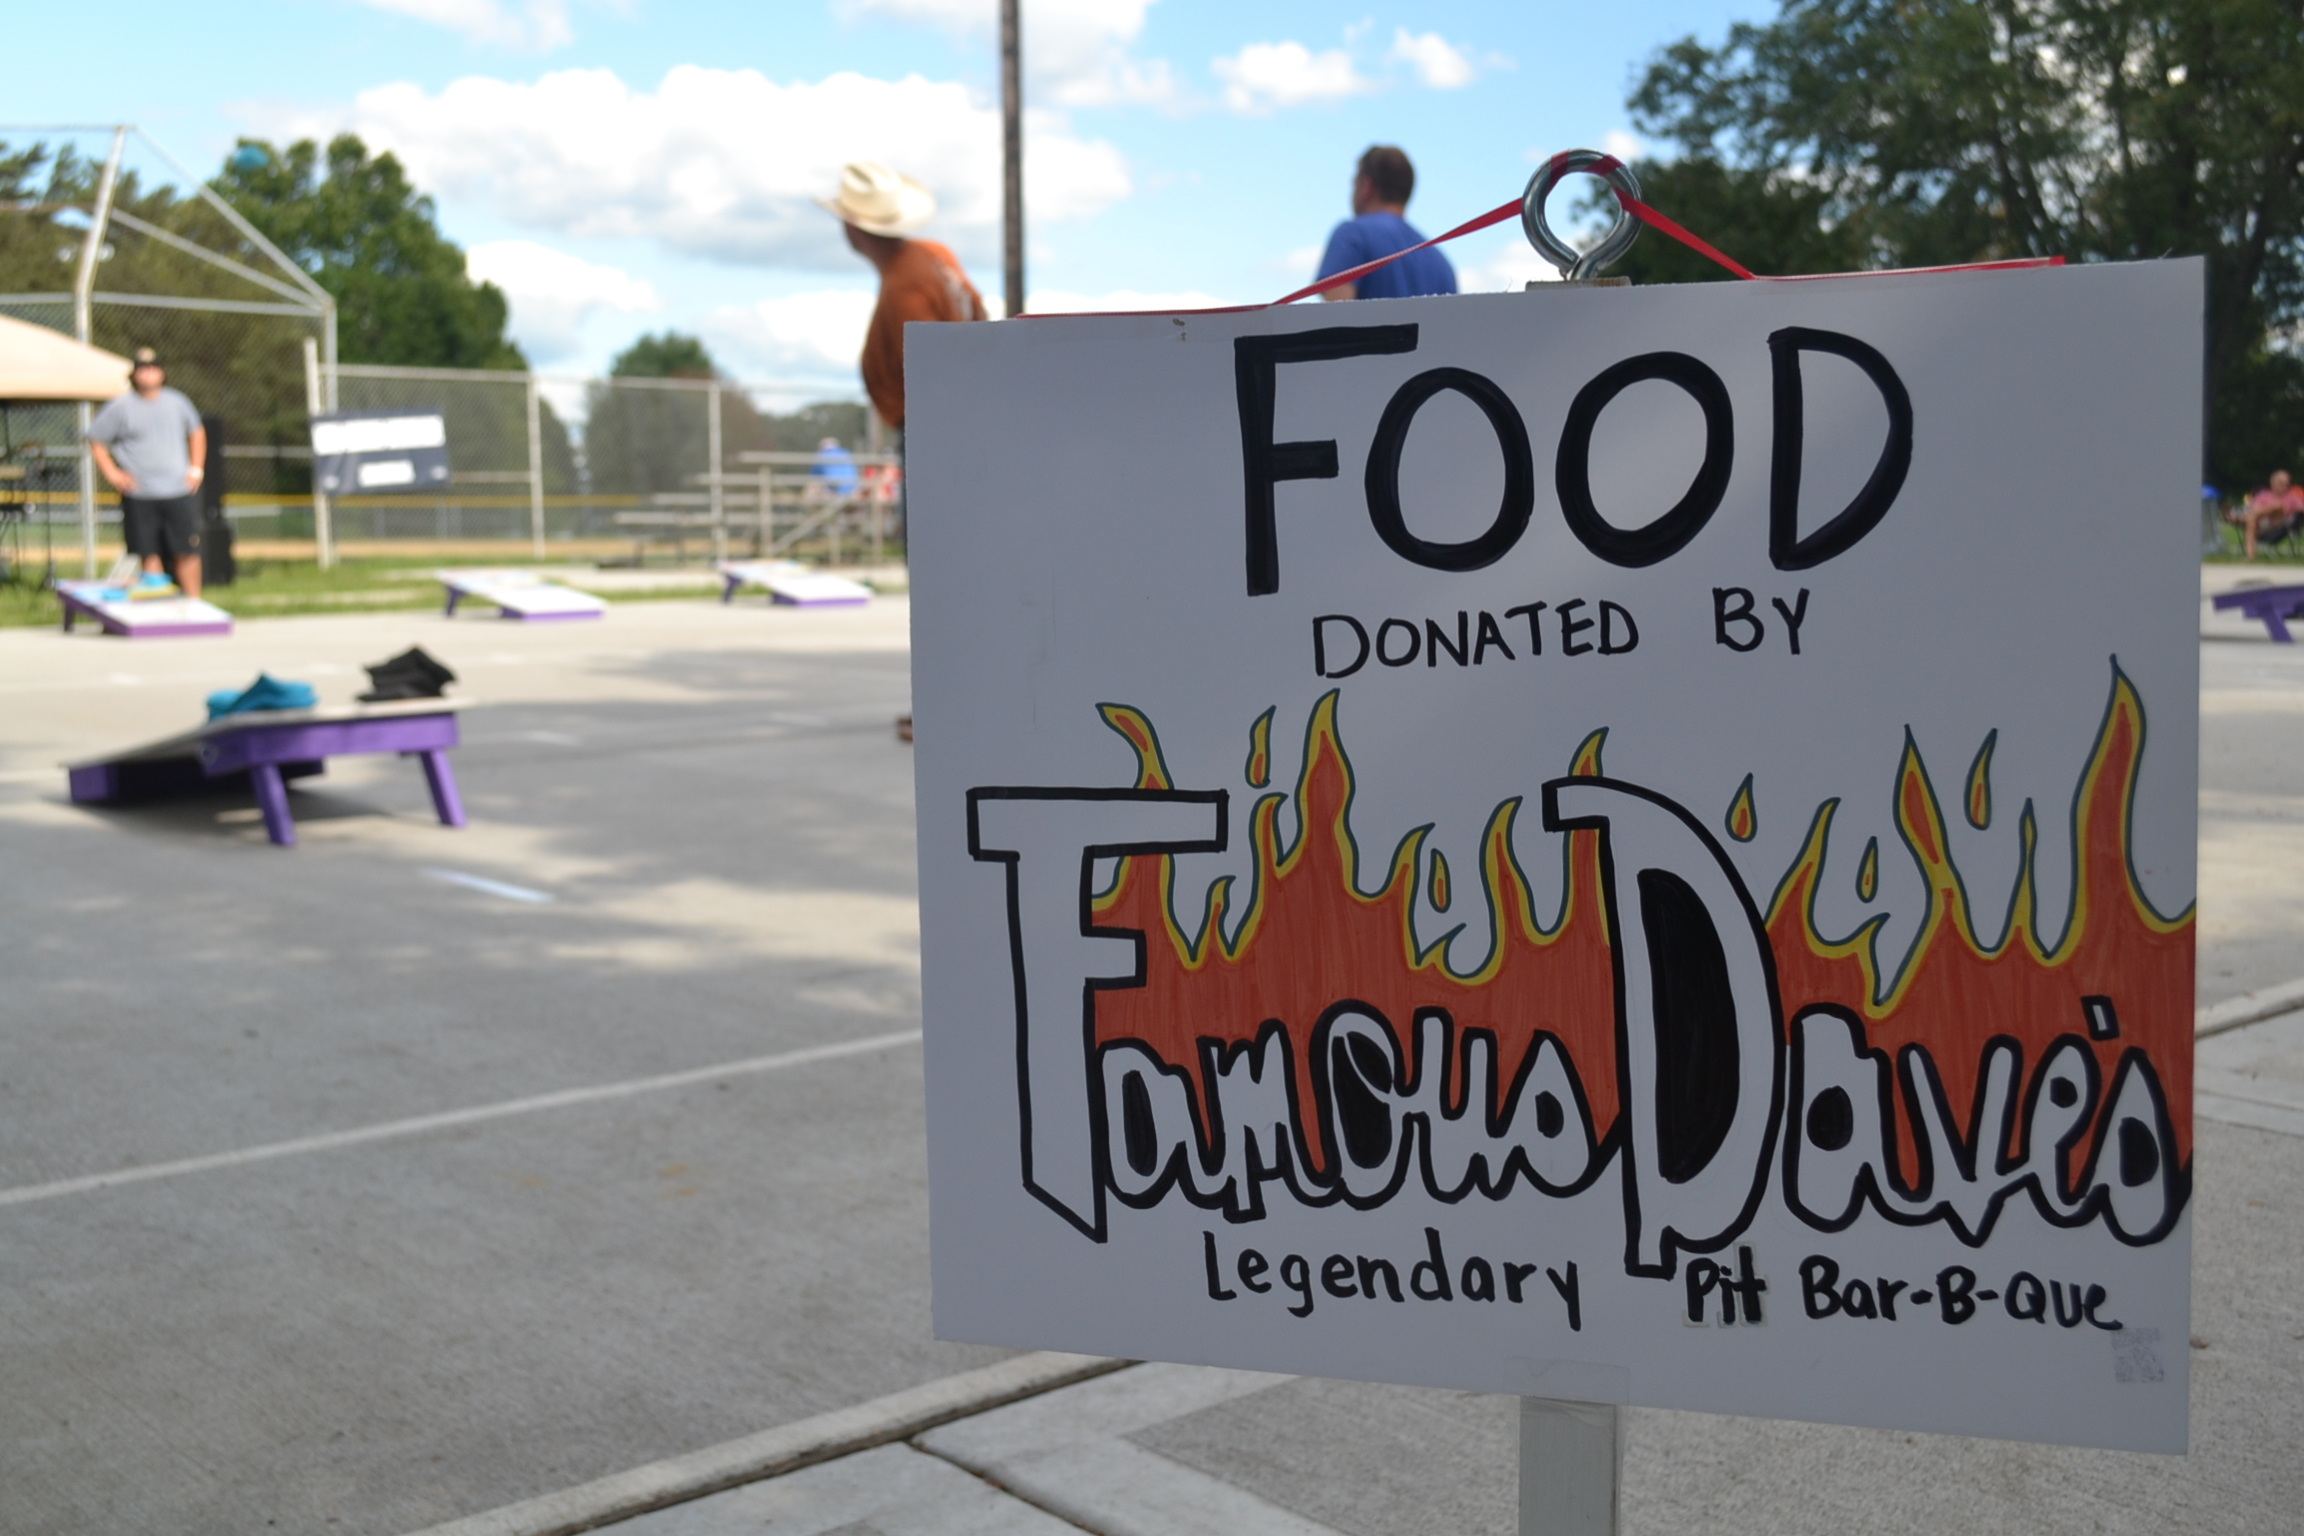 Food donated by Famous Dave's sign